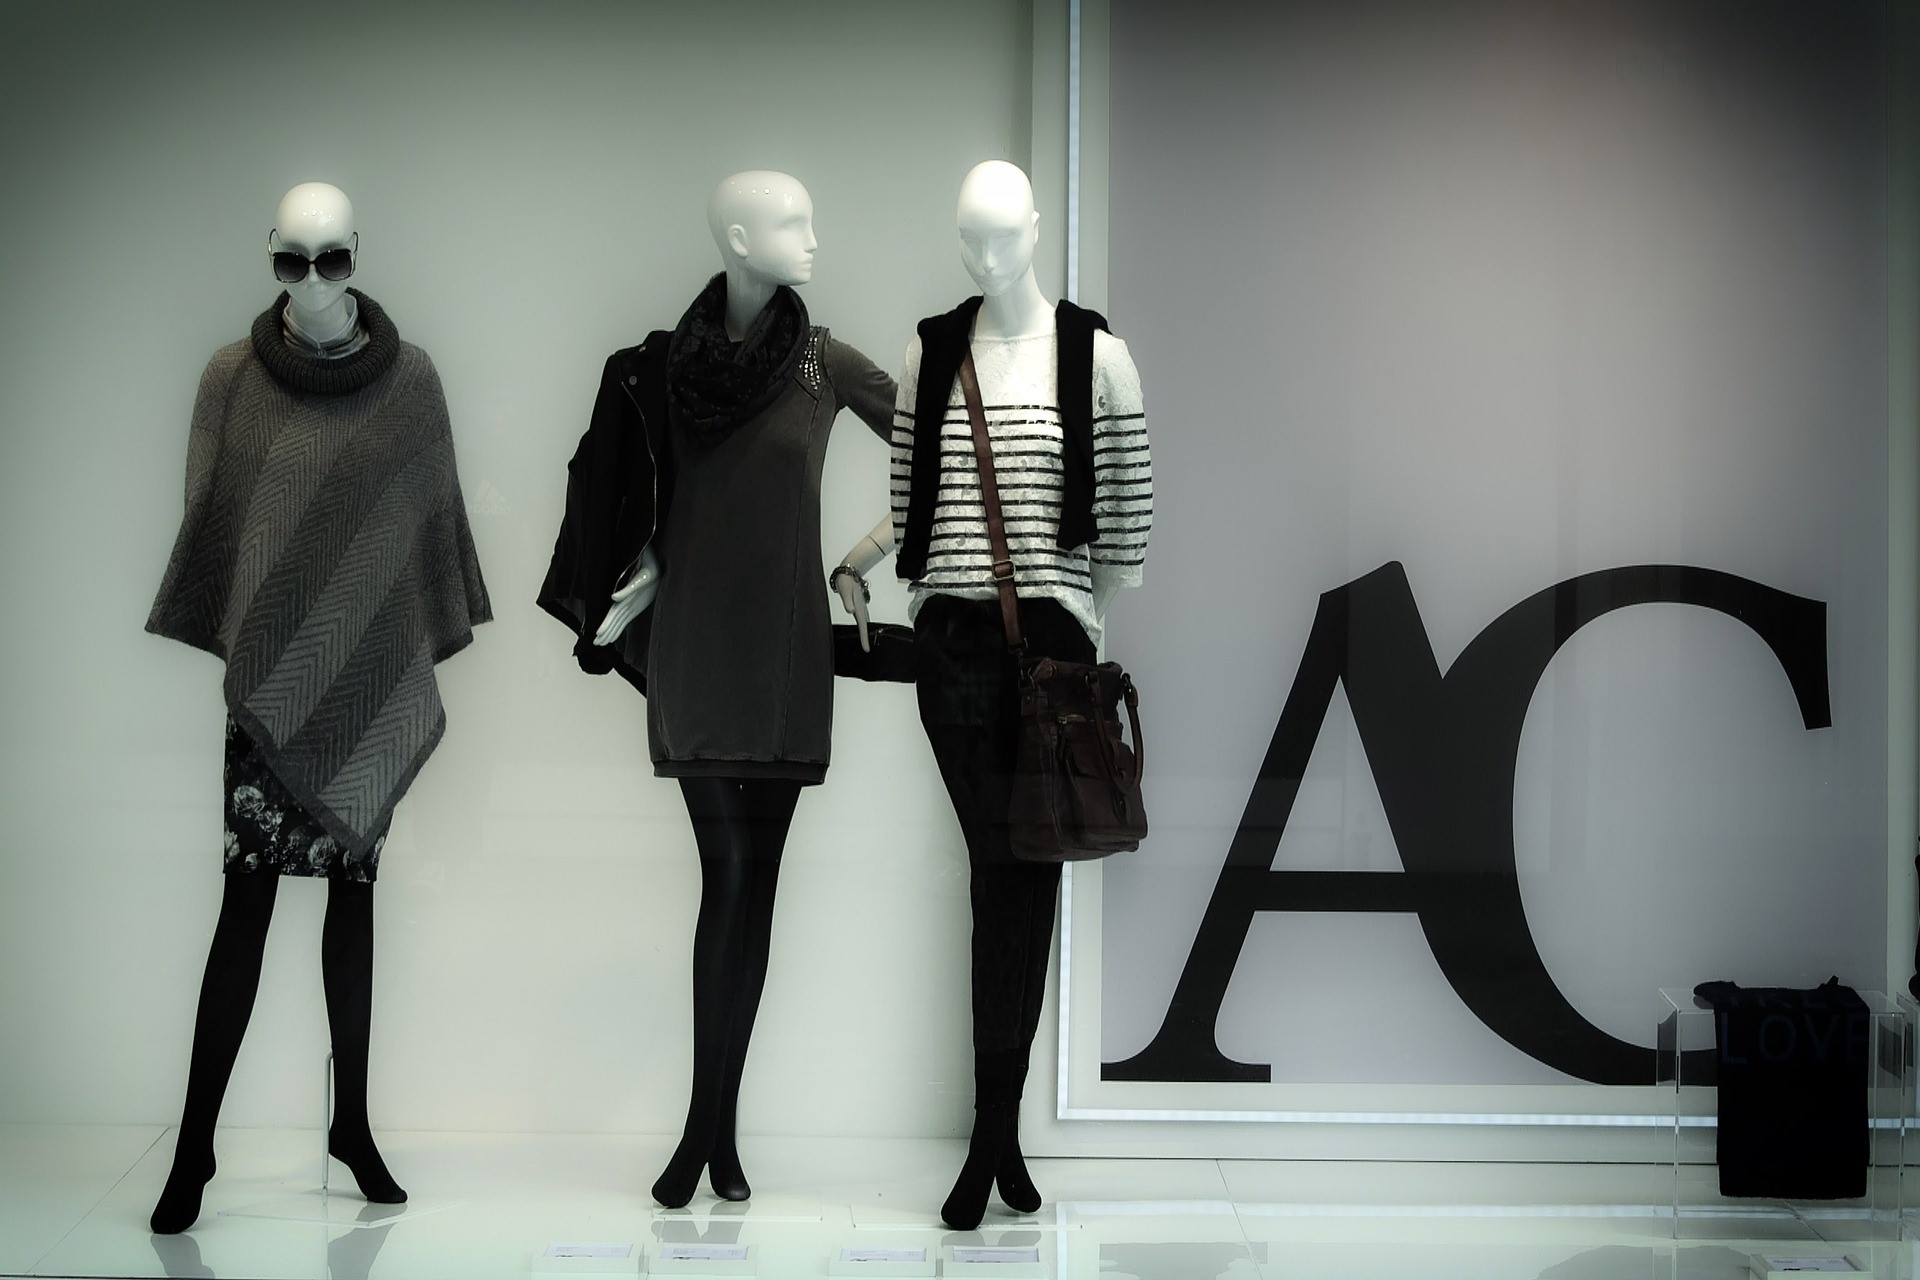 visual merchandising 101 - Visual Merchandising 1 - Visual Merchandising 101: 6 tips for iconic store displays